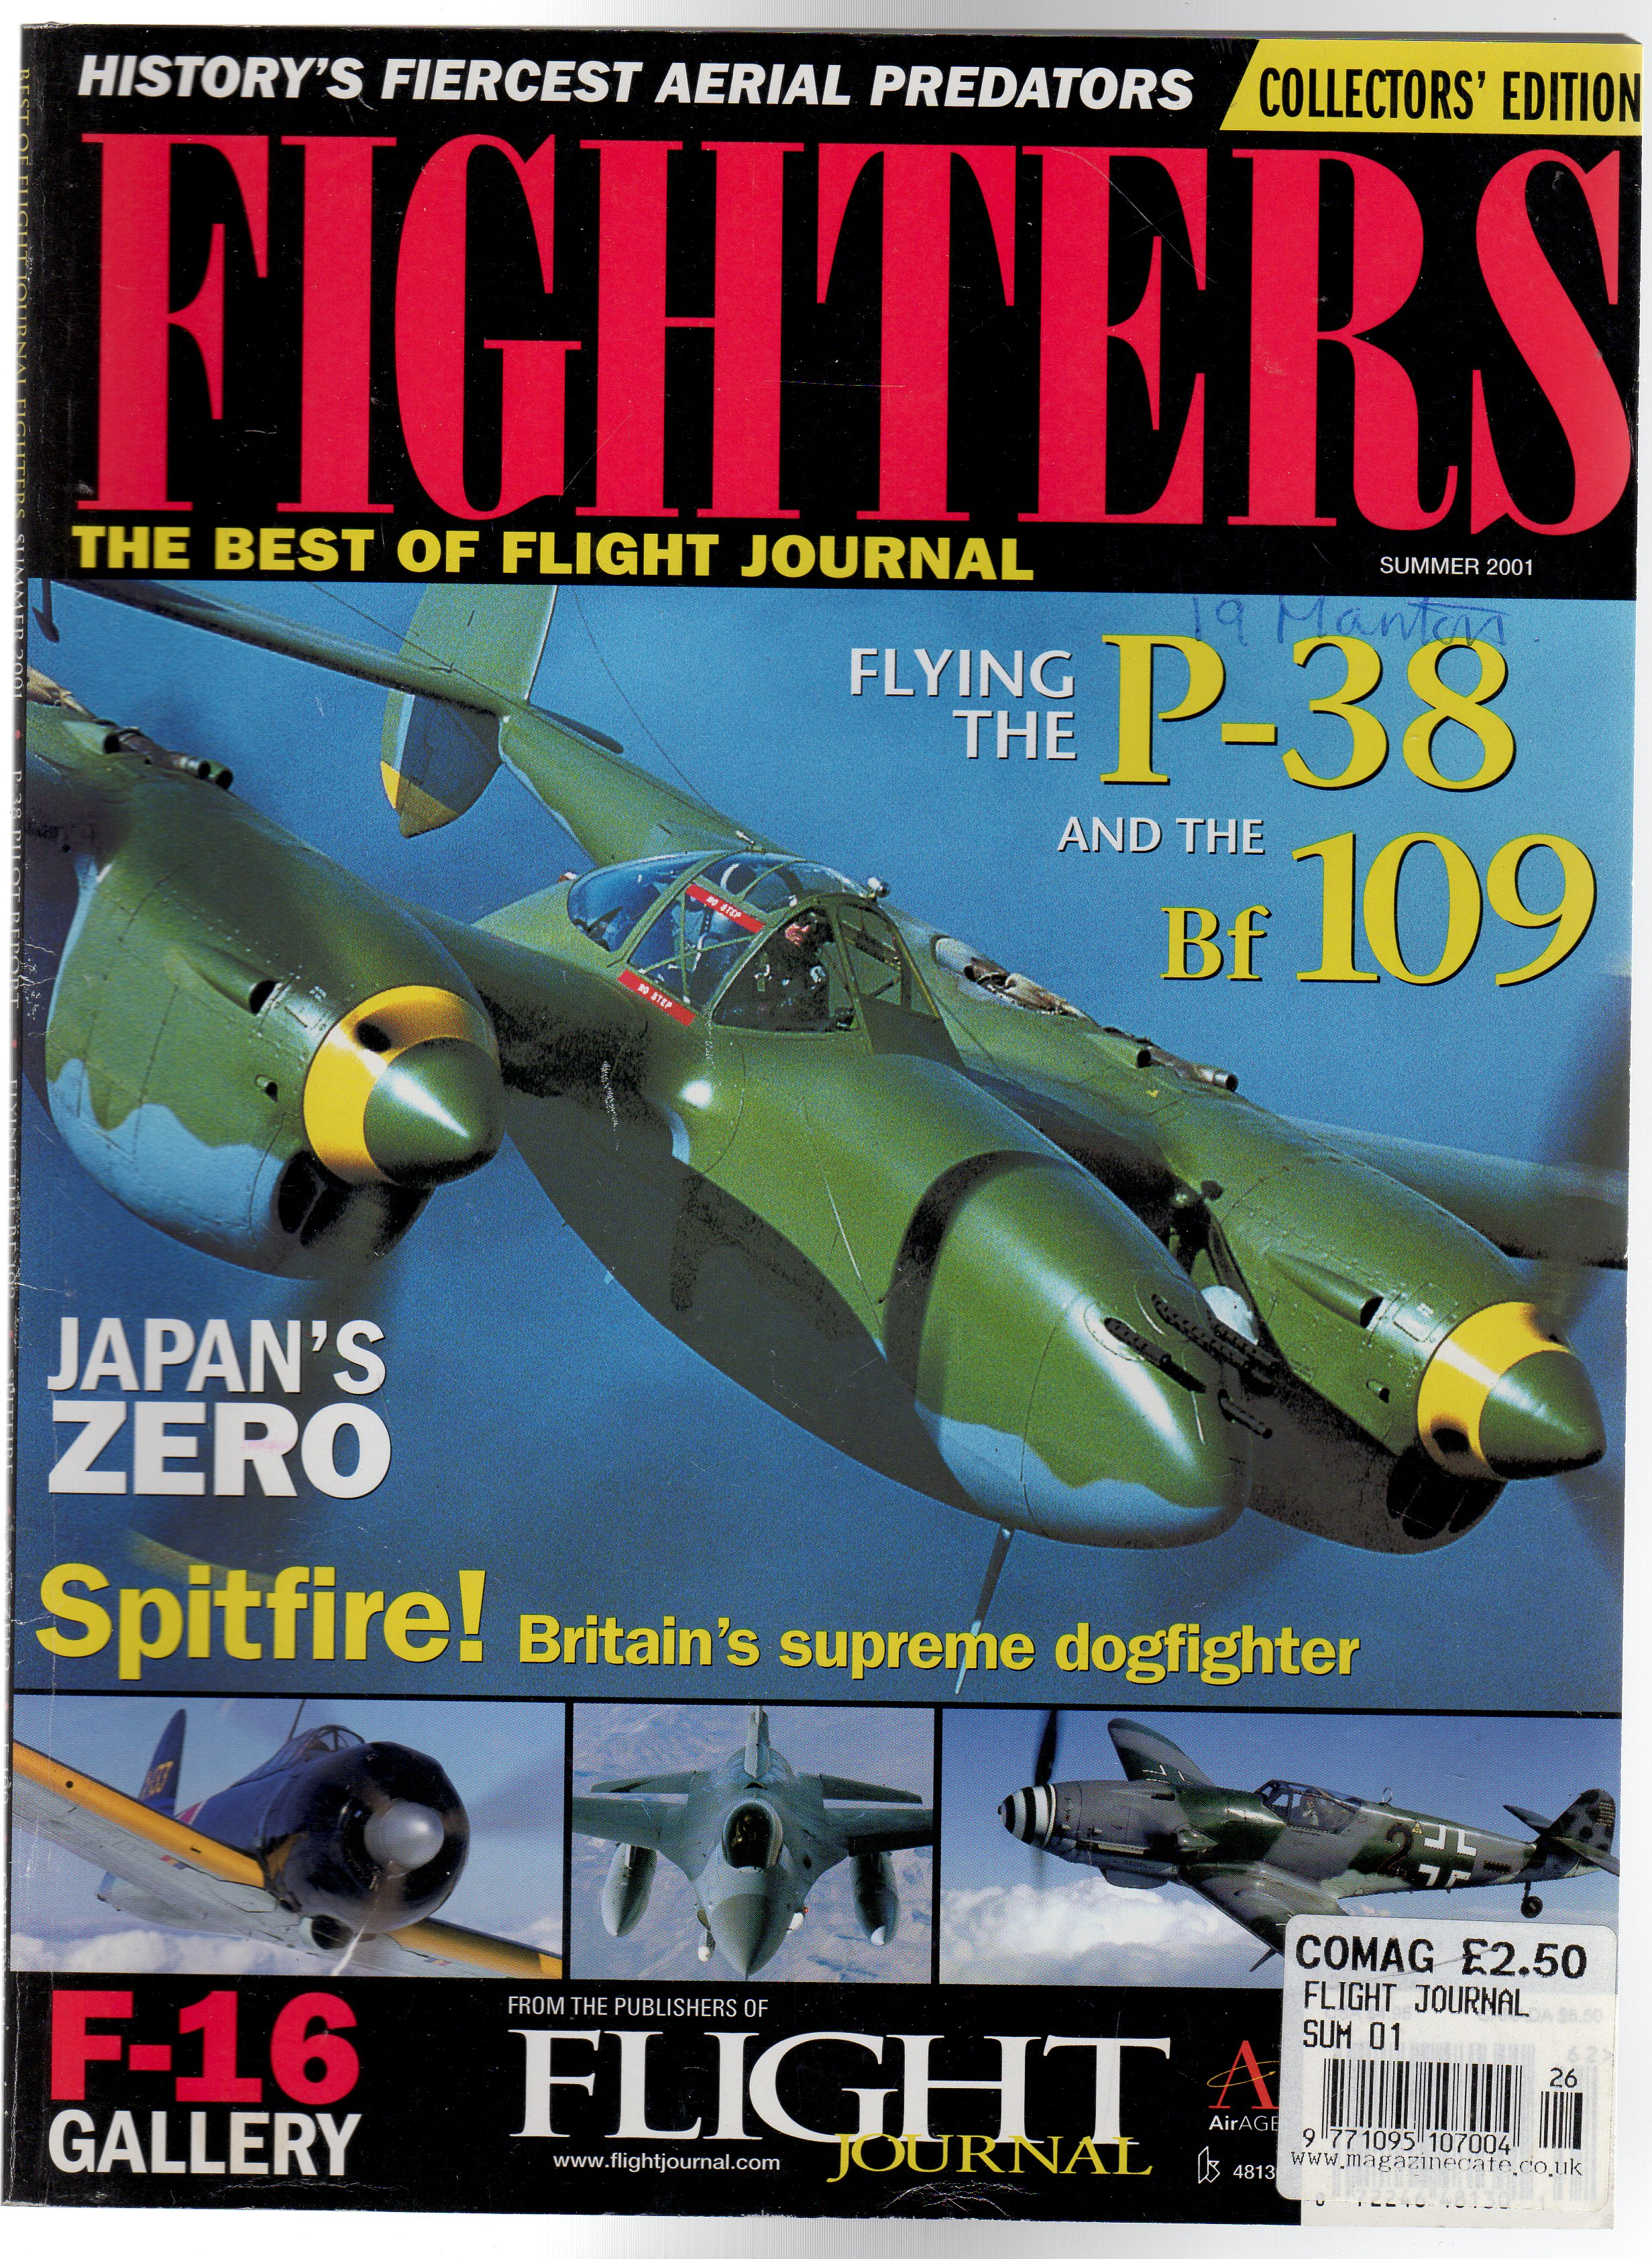 Image for Fighters the Best of Flight Journal Collectors Edition Summer 1991l